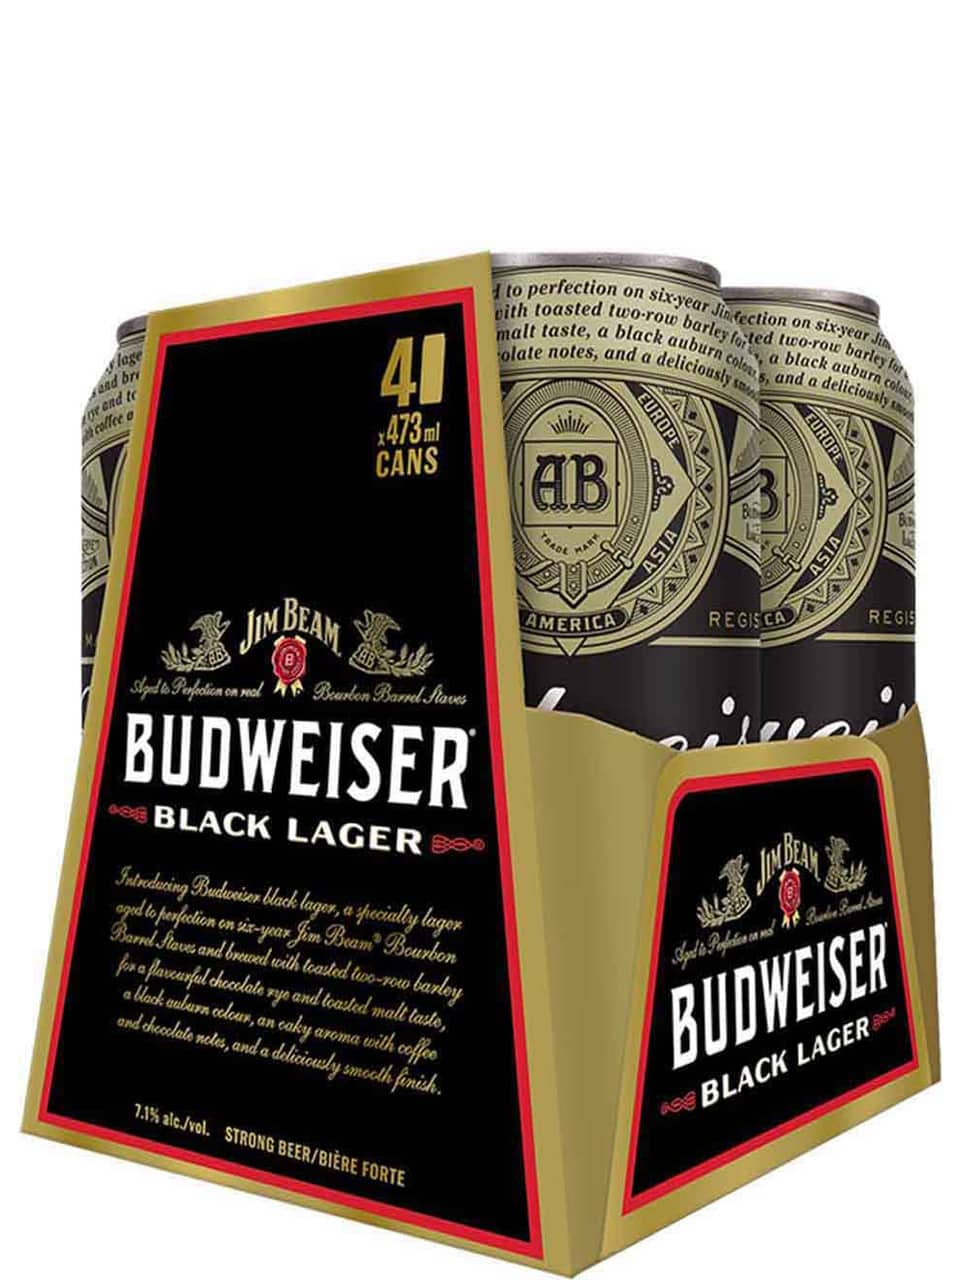 Budweiser Black Lager 4 Pack Cans